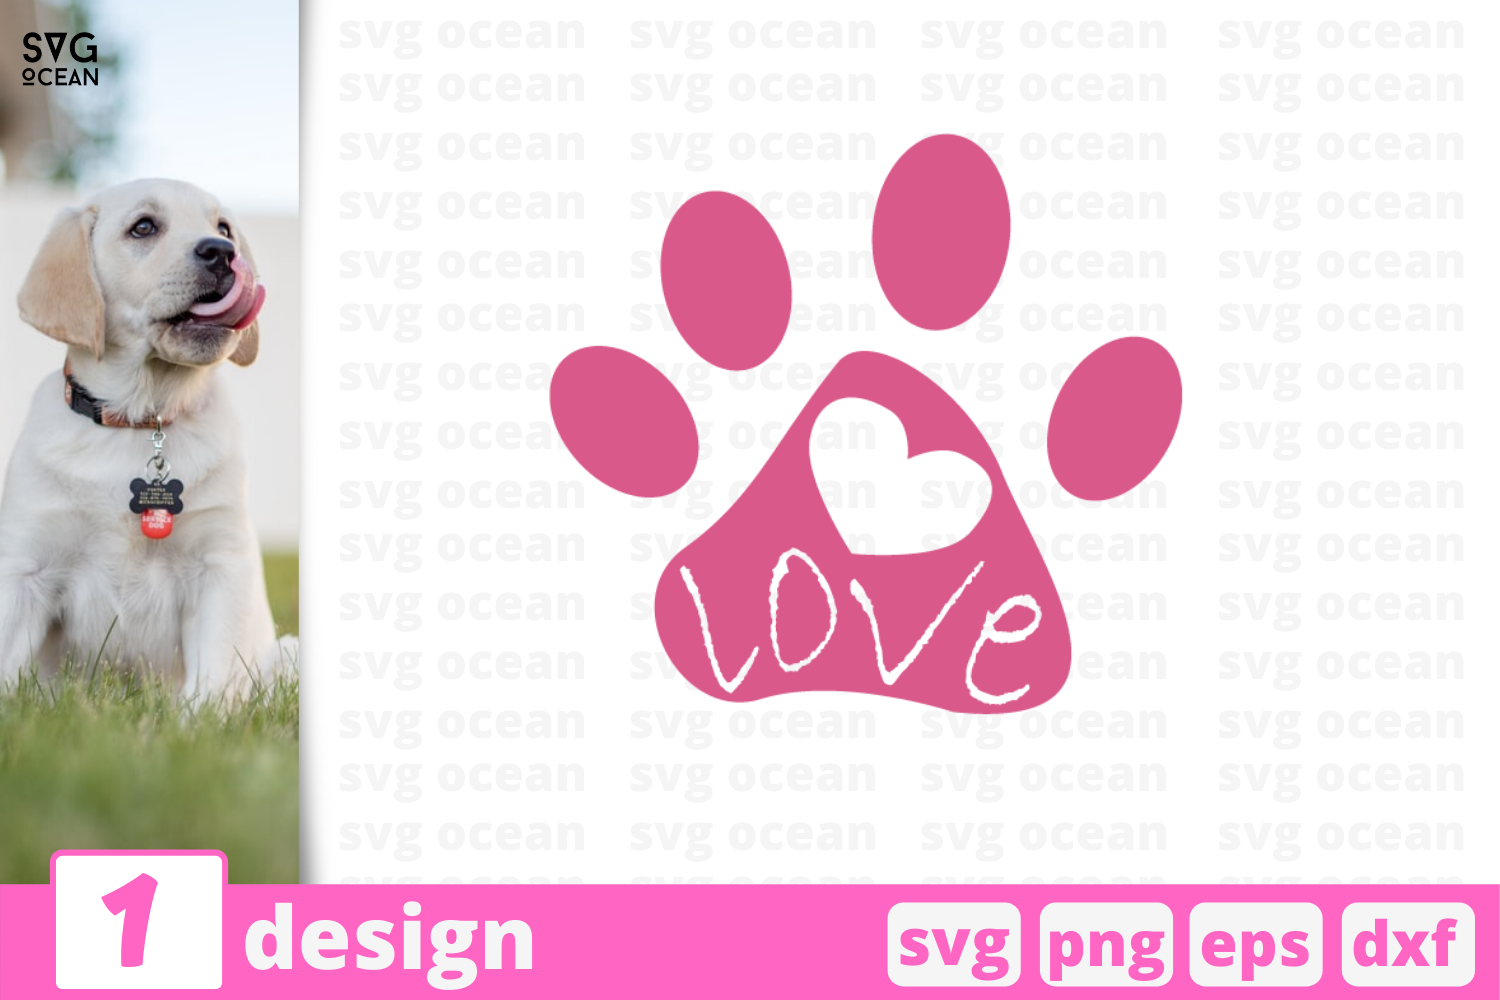 Download Free Yqphf3m6jcn2pm SVG Cut Files